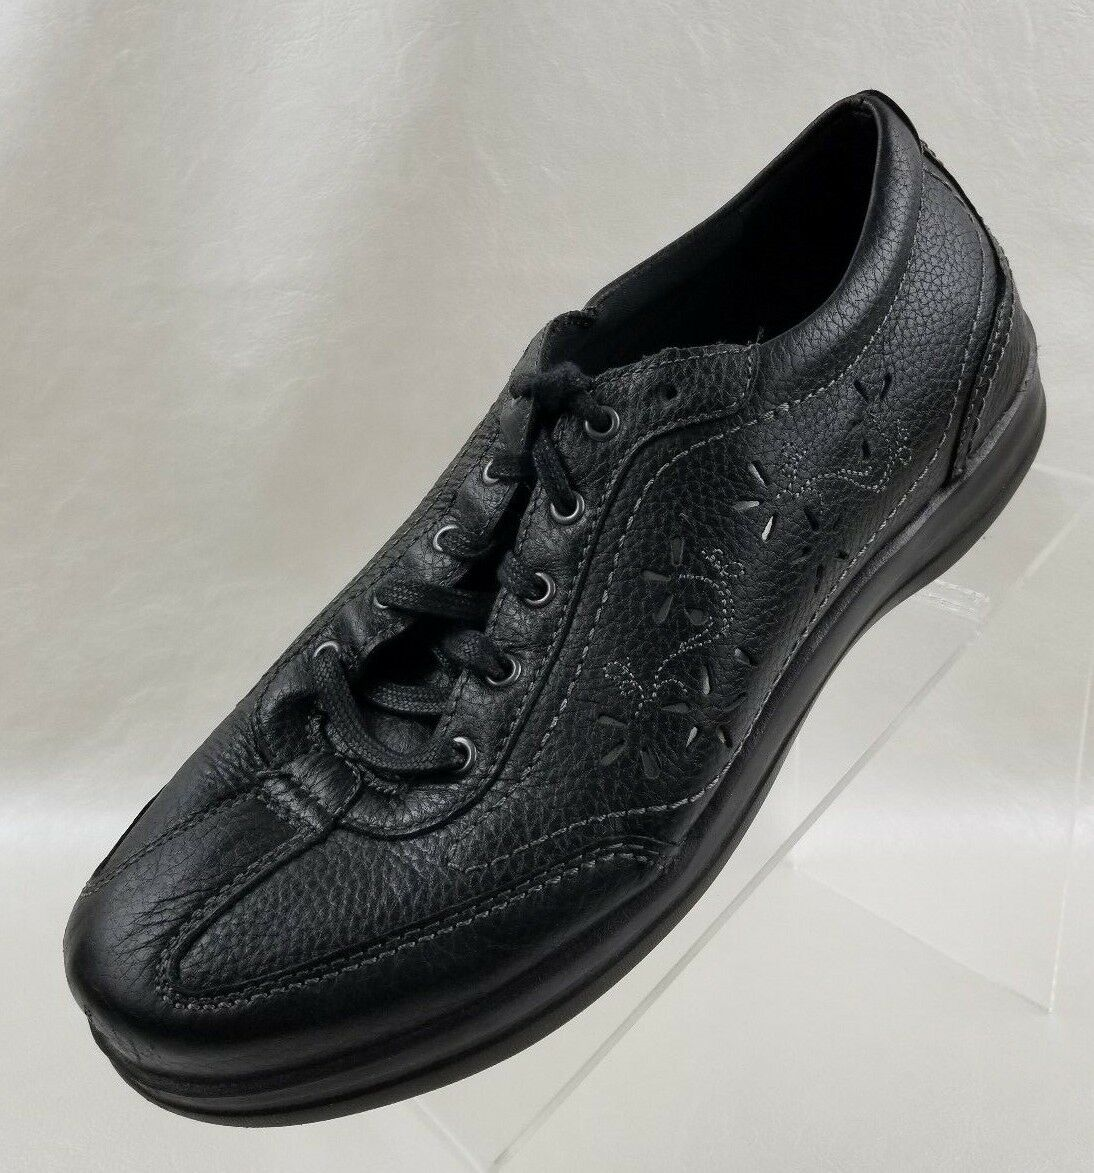 Apex Robyn Oxford Slip Resist Chop Out Womens Black Leather Lace Up shoes Sz 10M